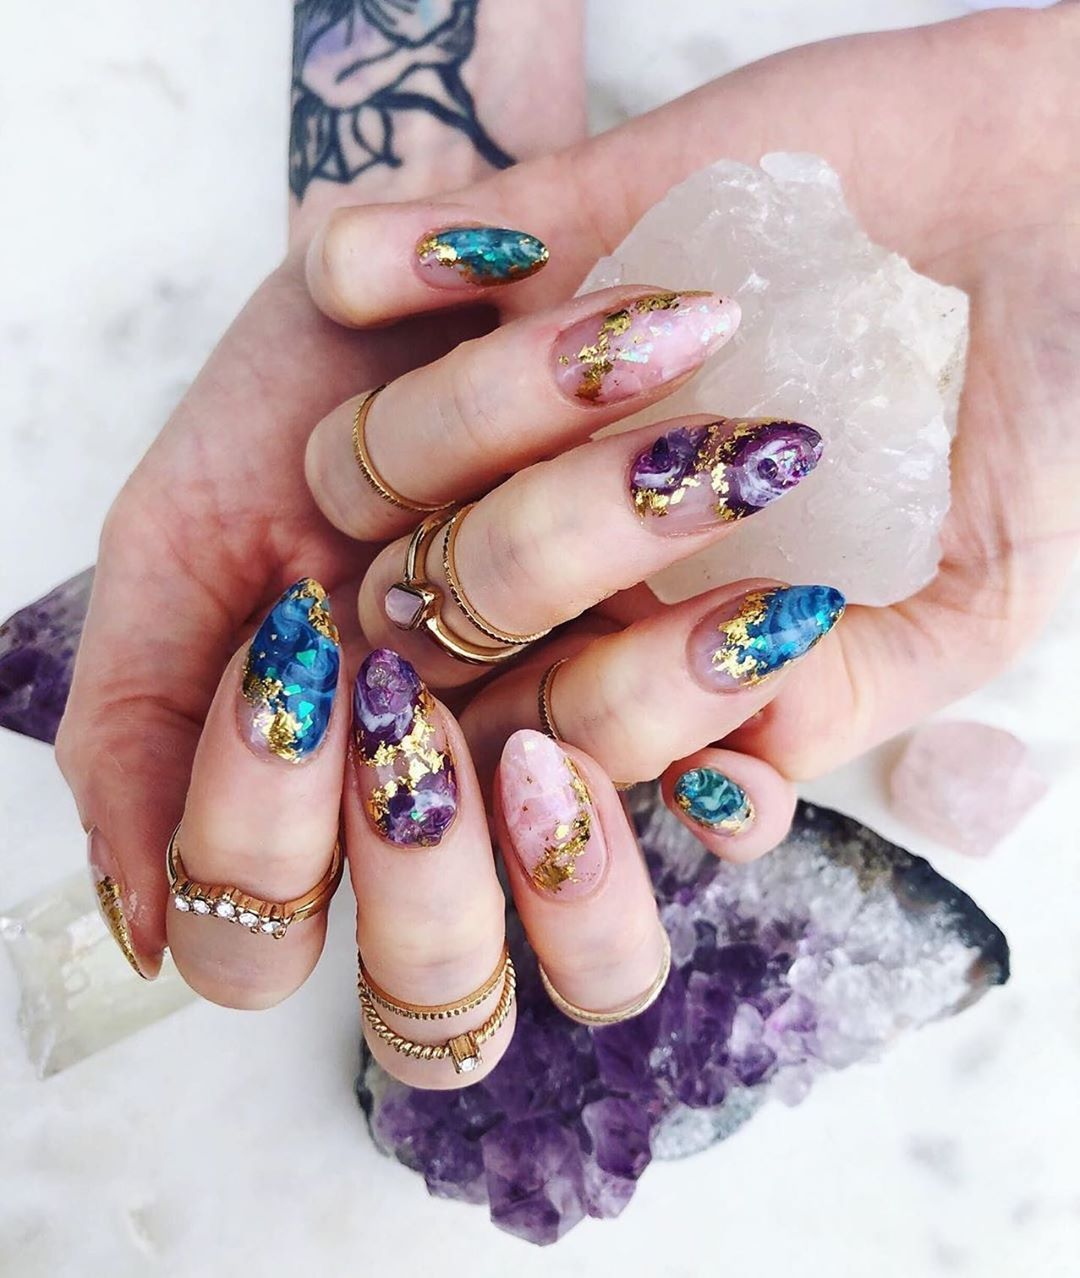 Lunar Spell On Instagram Beauty Credits Buffcsjen Witch Witchcraft Wicca Nailsart Nails Cry In 2020 Witchy Nails Crystal Nails Makeup Nails Designs